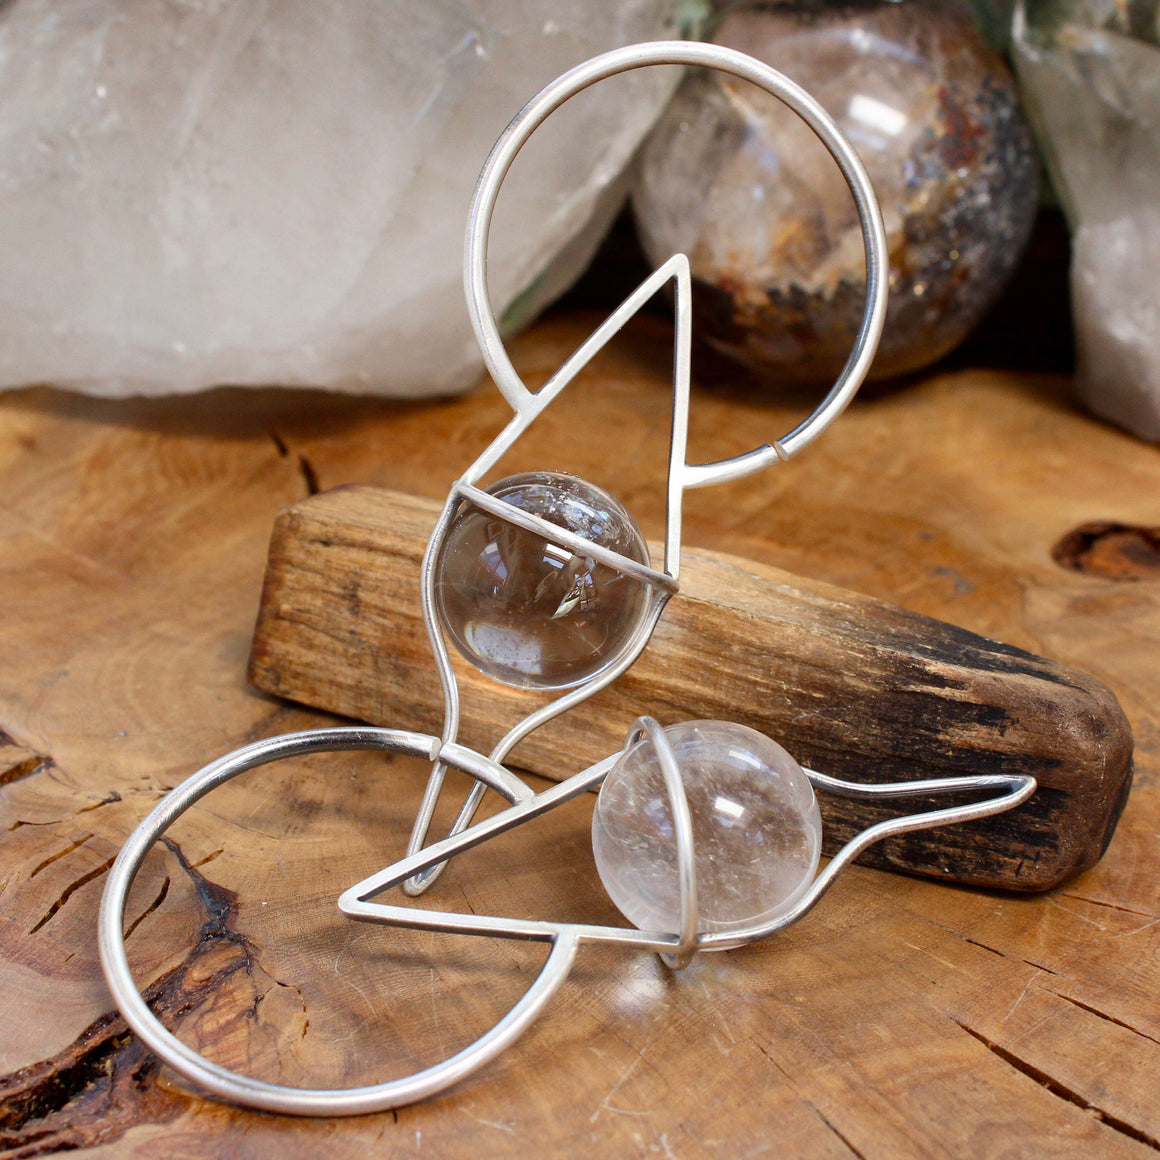 Crystal Ball Ear Weights // Clear Quartz - acid-queen-jewelry, All Products - acid-queen-jewelry, vendor-unknown - acid-queen-jewelry,  Acid Queen Jewelry - acid-queen-jewelry